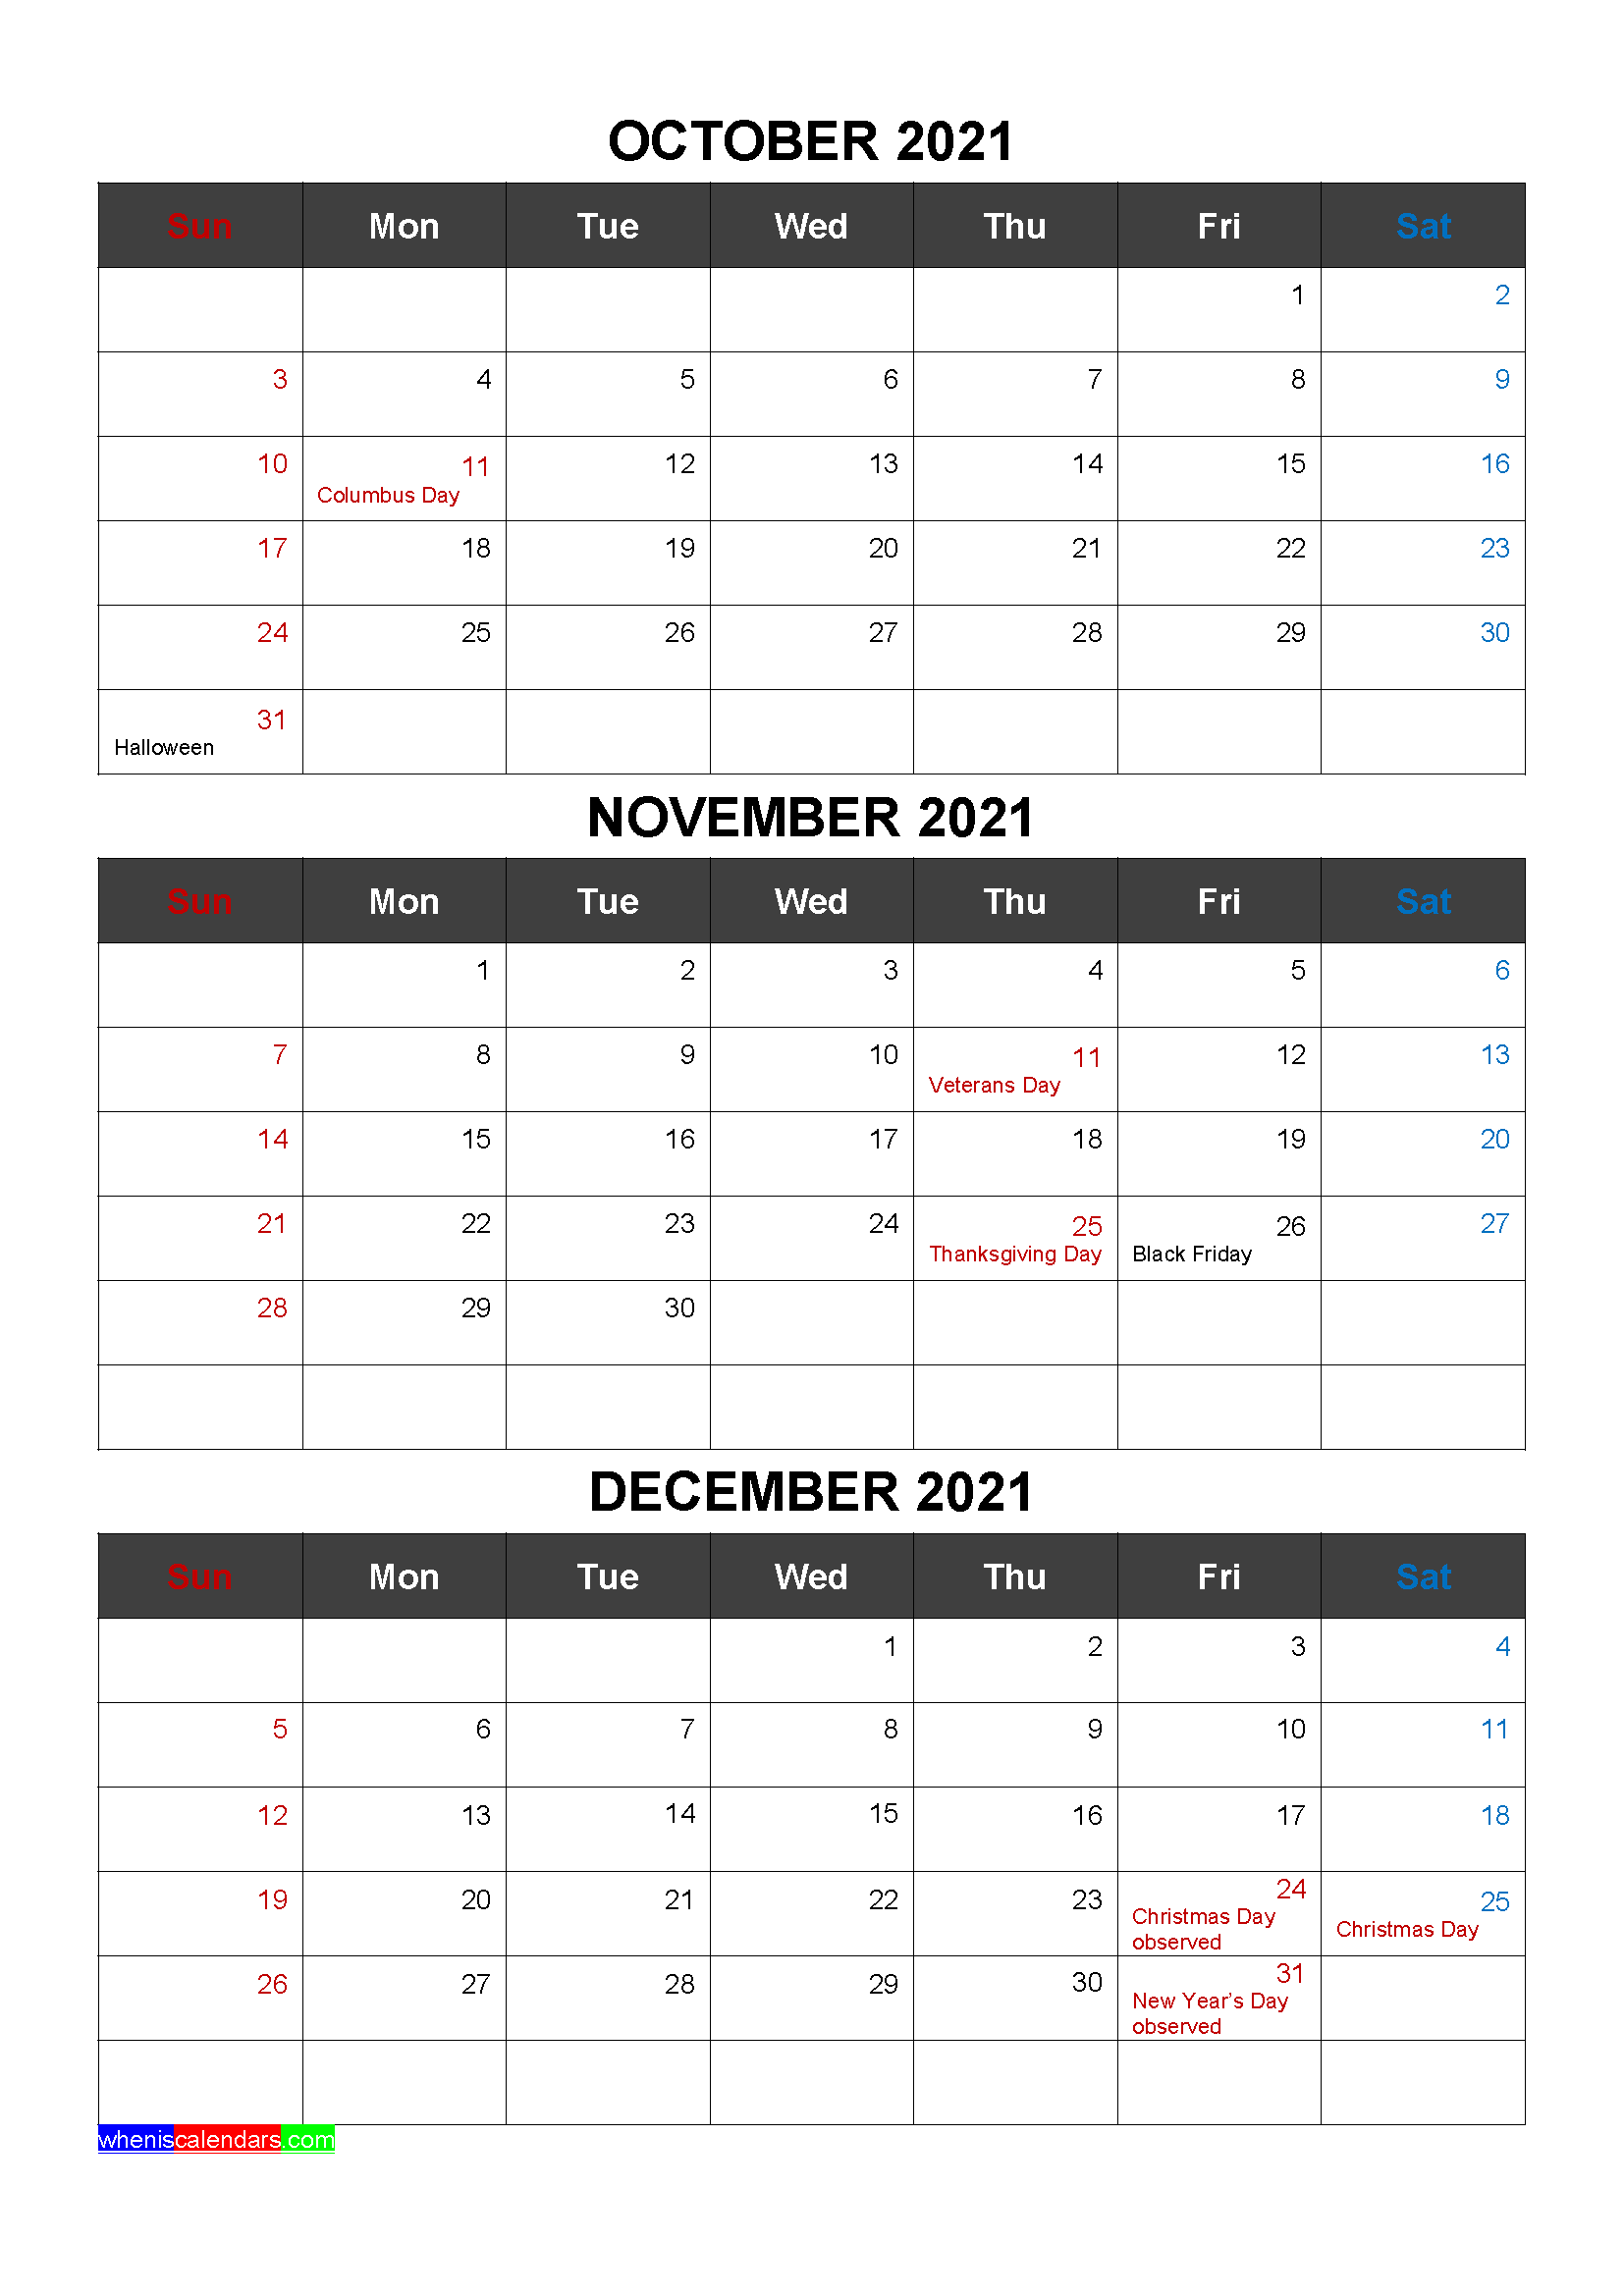 Free Calendar October November December 2021 with Holidays